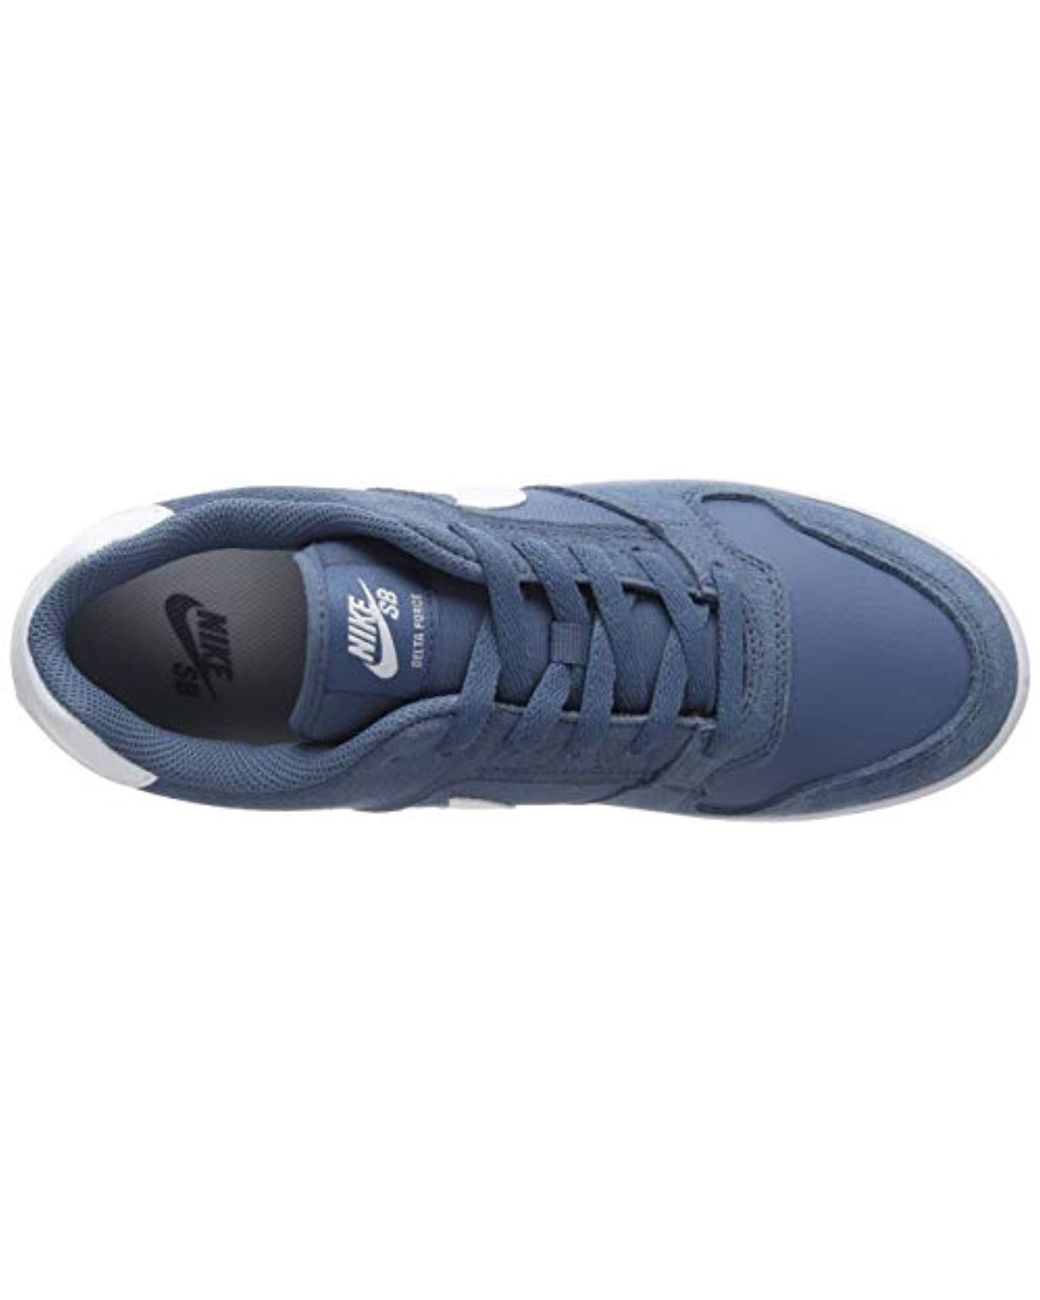 buy online 00400 409d9 Nike Sb Delta Force Vulc Skateboarding Shoes in Blue for Men - Lyst